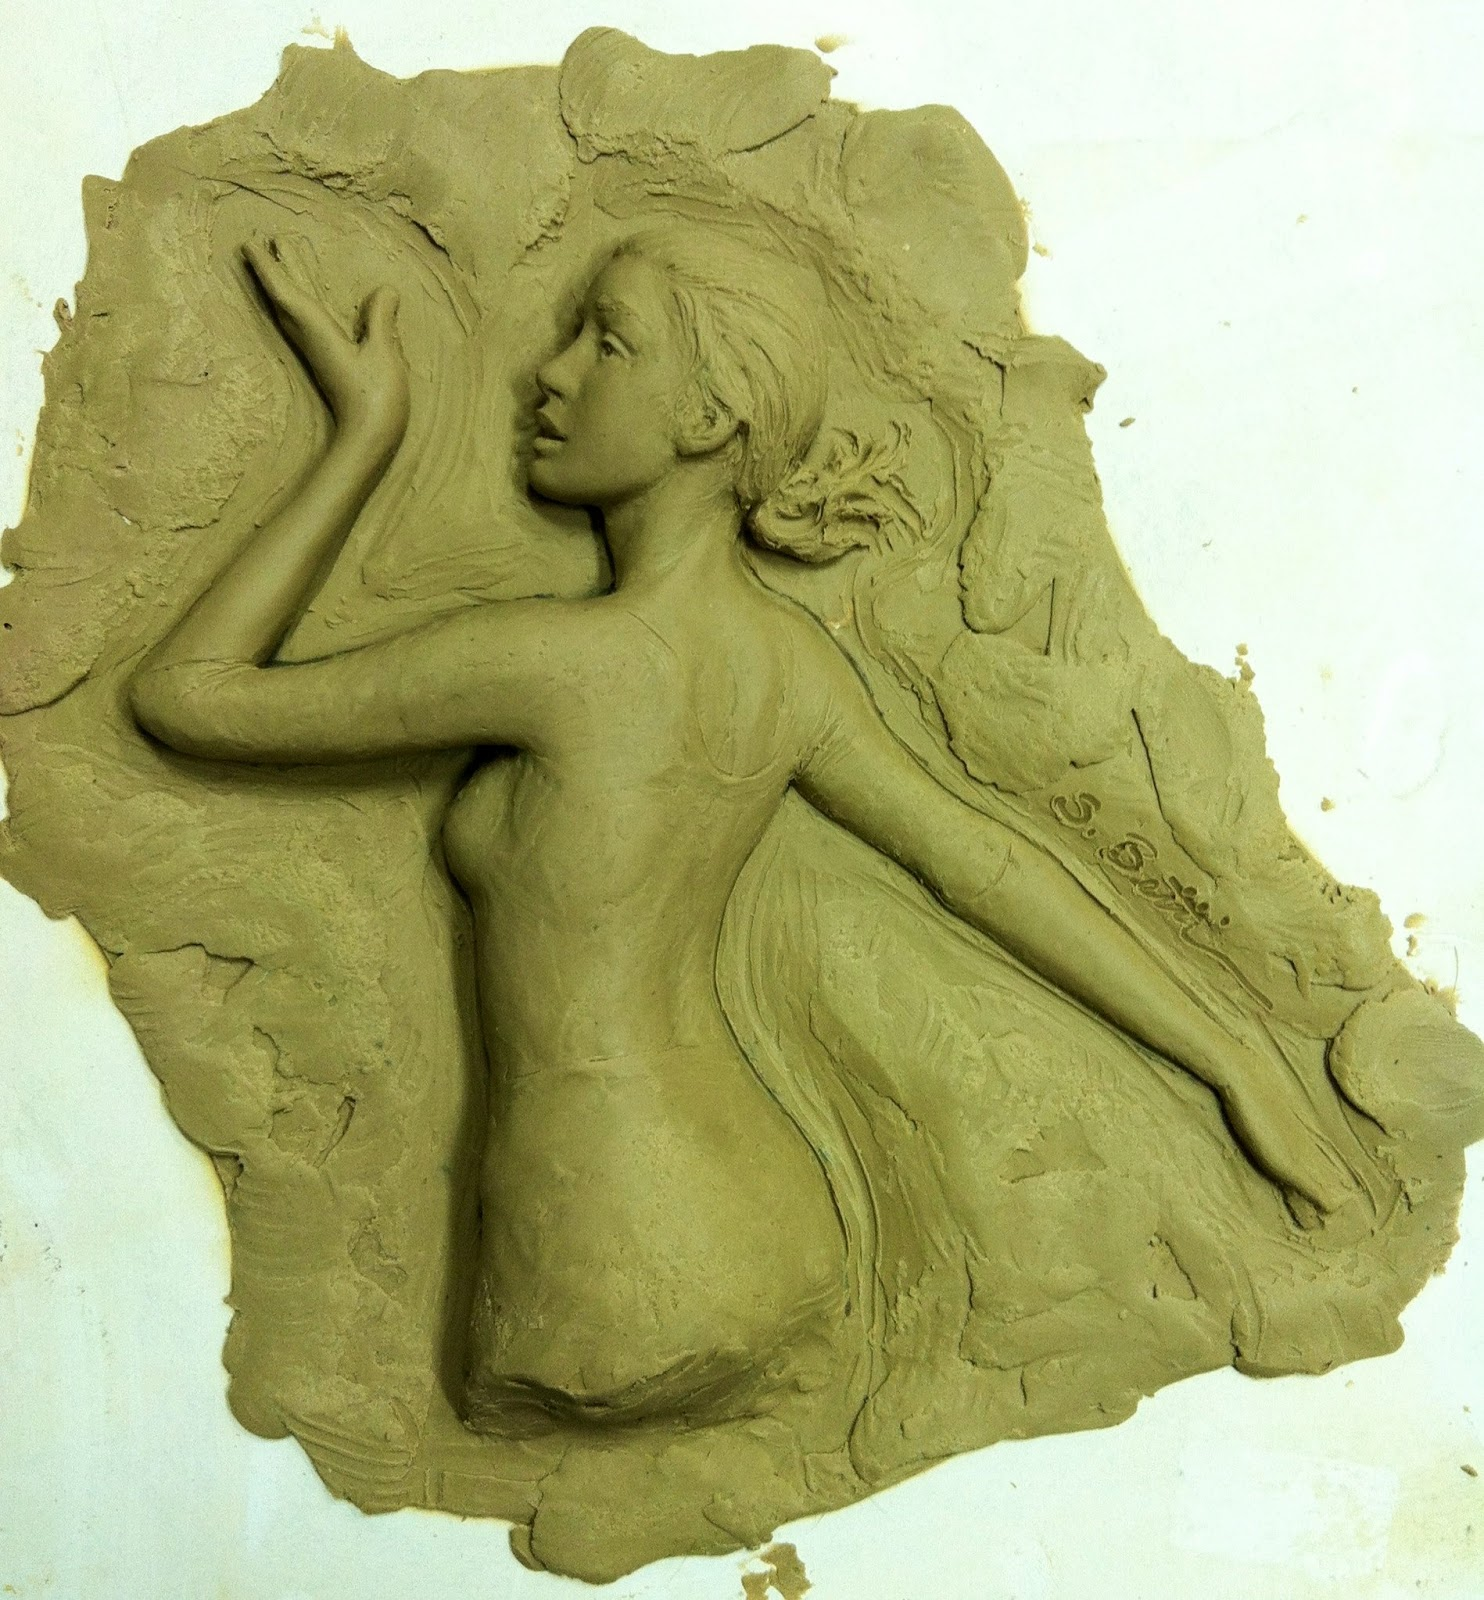 Sutton betti sculpture and drawings relief sculptures